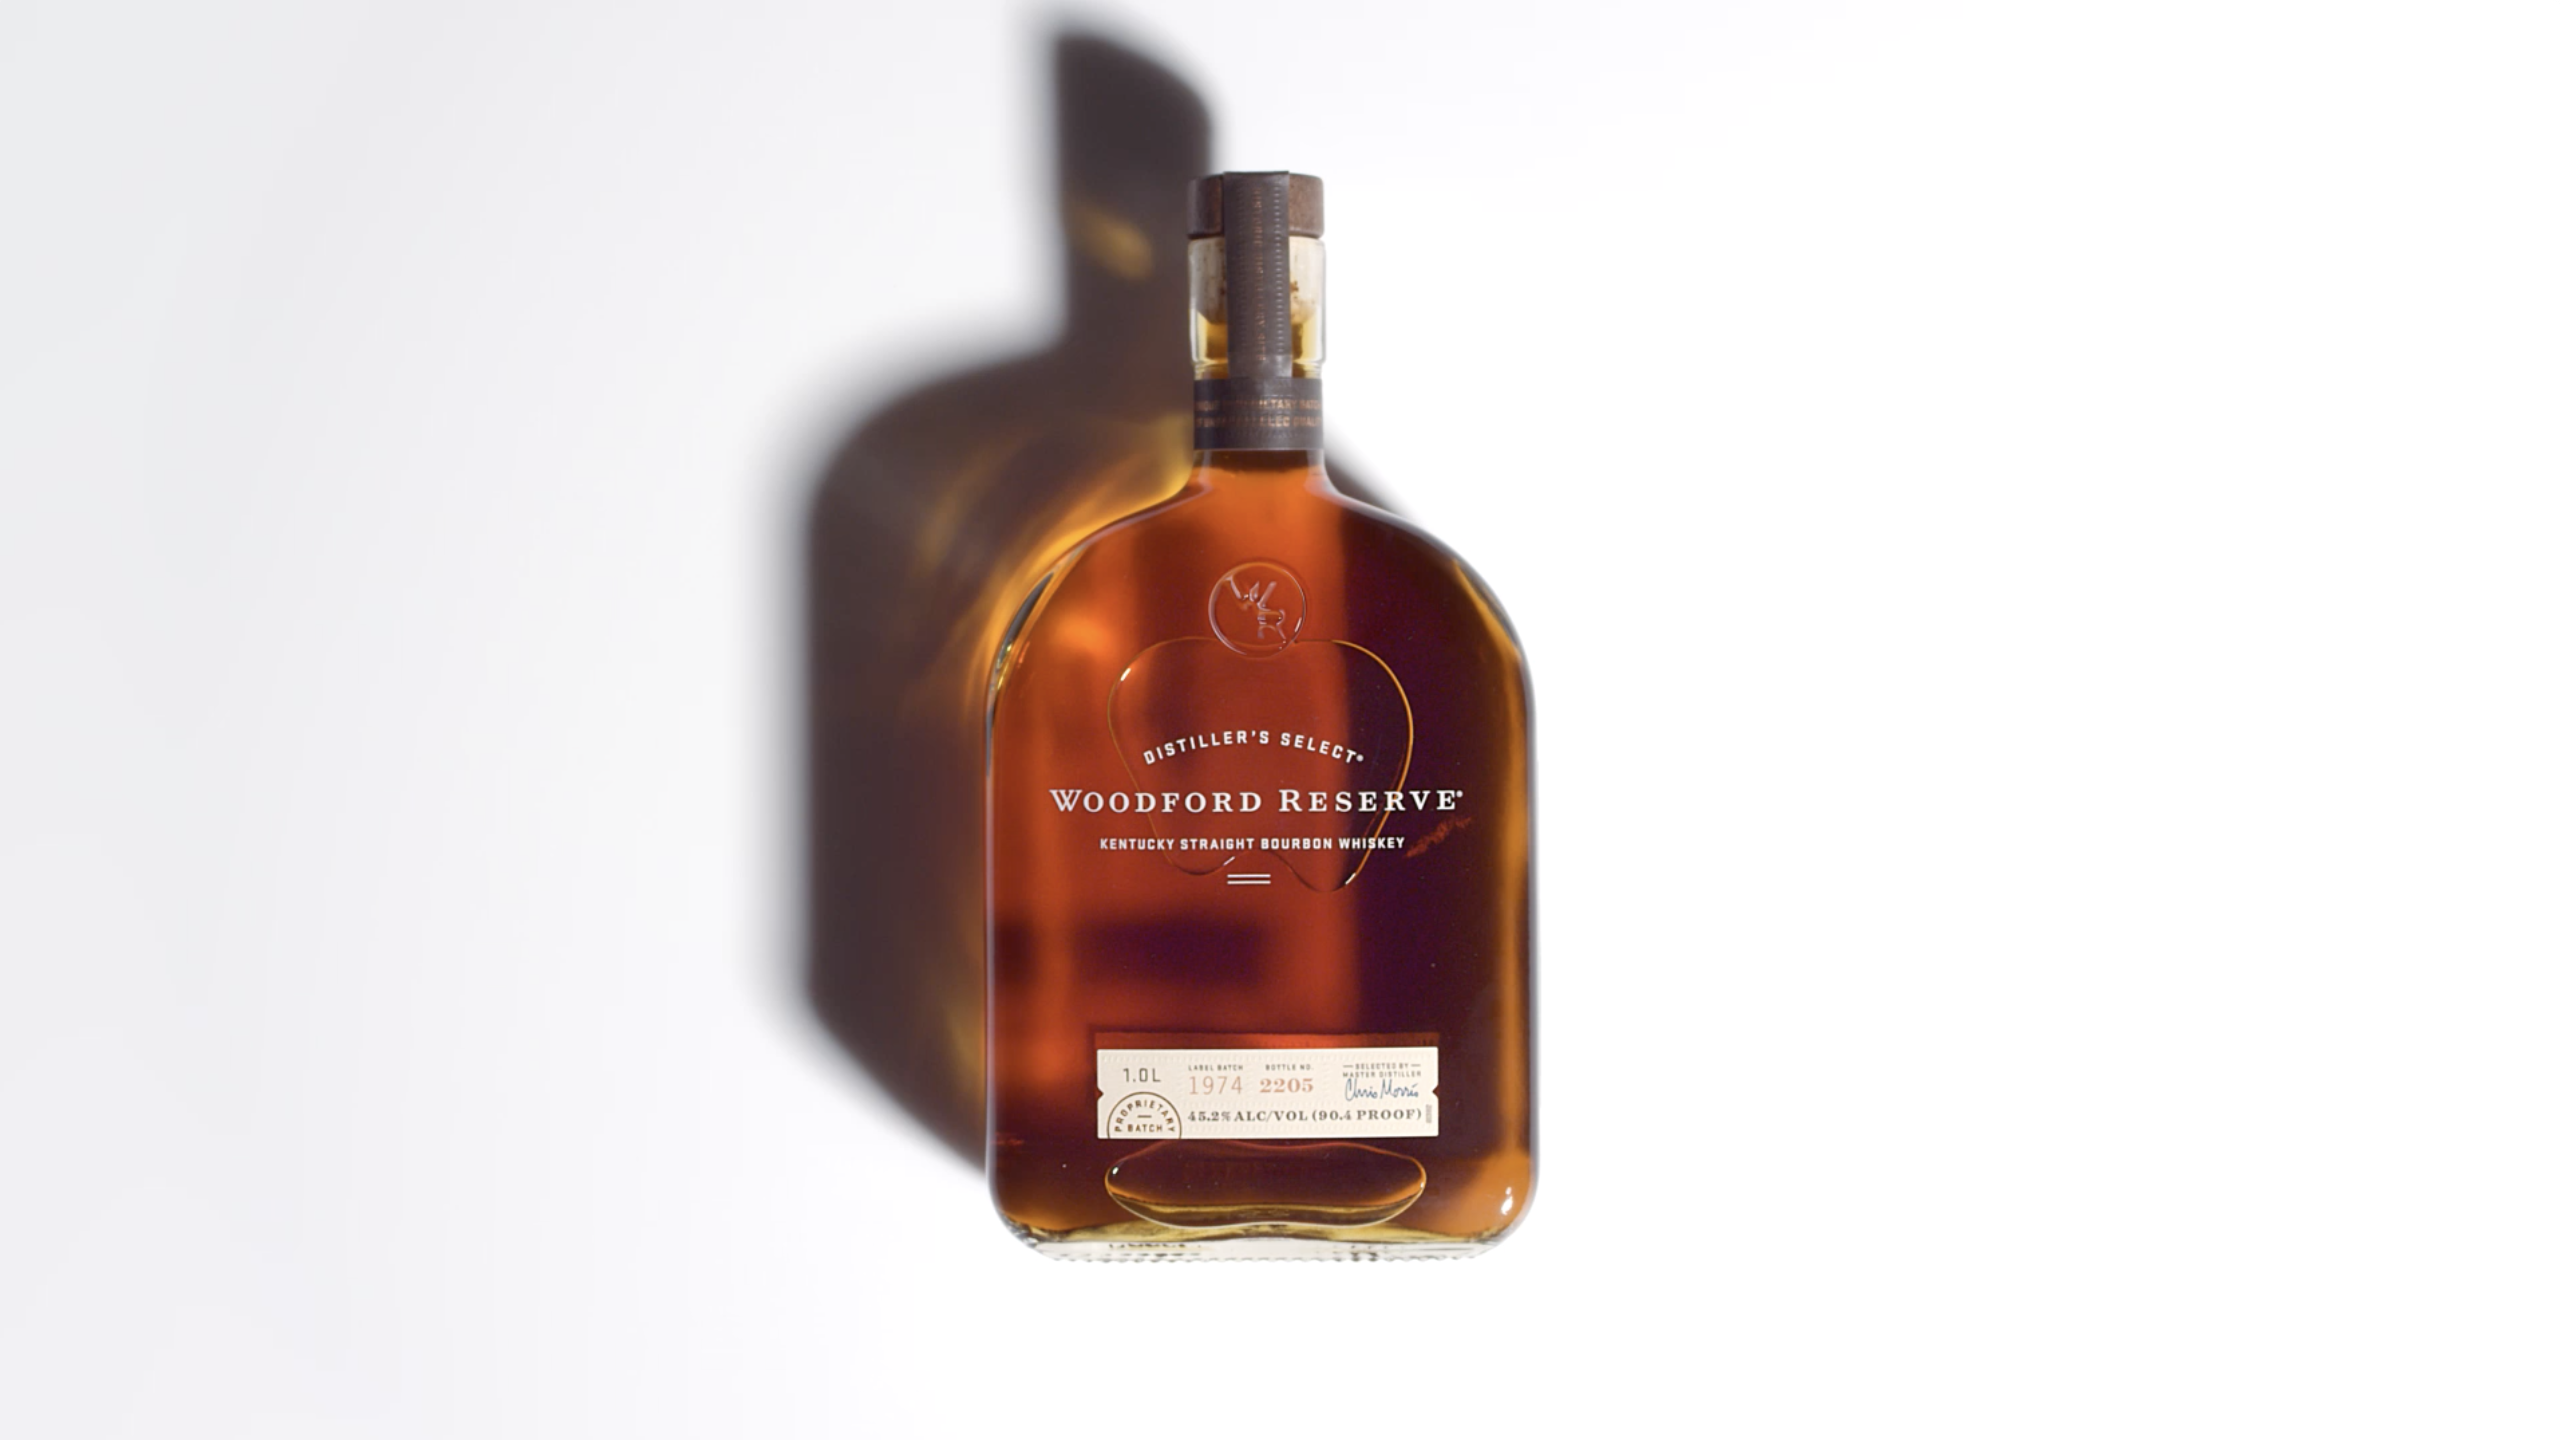 Woodford Reserve Spectacle for the Senses 01